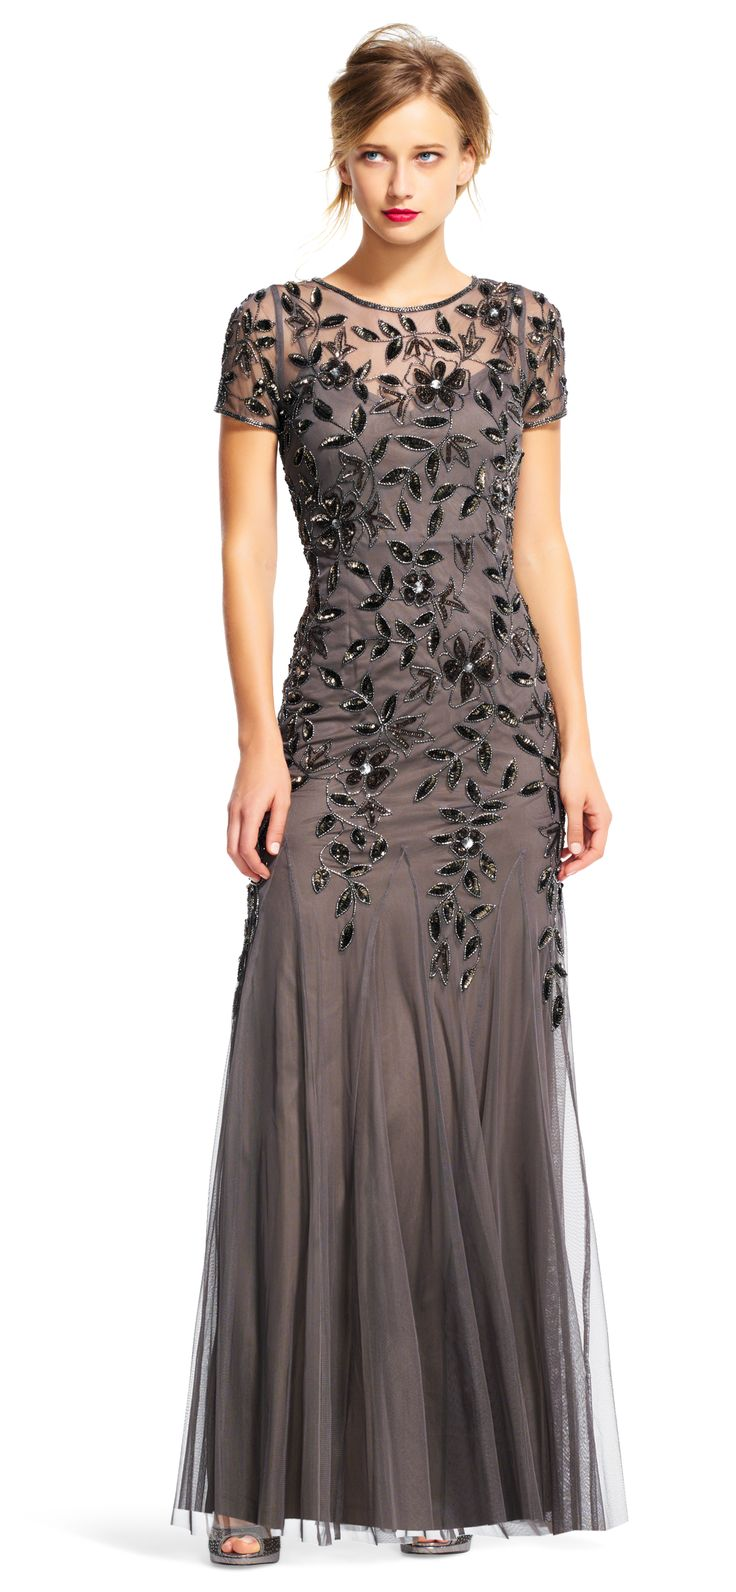 Pinterest flapper wedding dresses 1920s style and adrianna papell - Adrianna Papell Floral Beaded Godet Gown This Truly Glamorous Gown Features A Delicately Beaded Floral